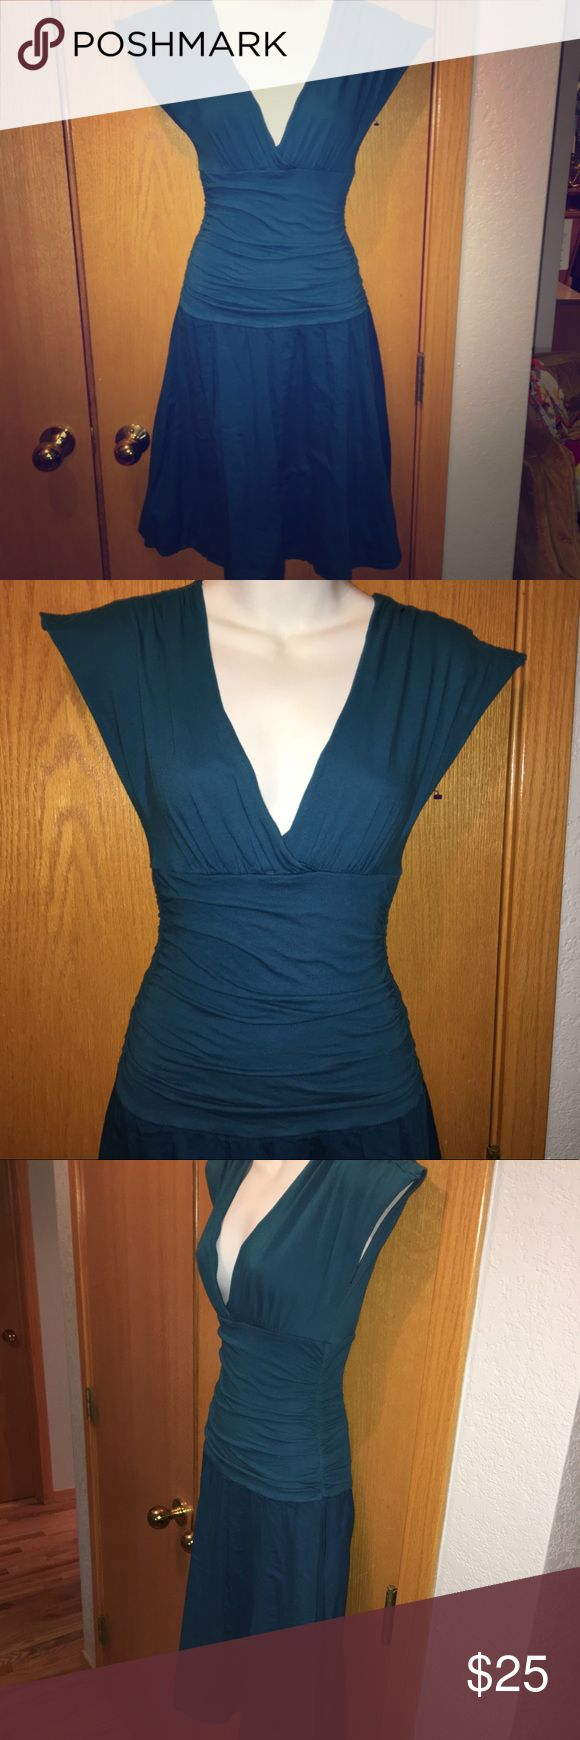 "Velvet by Graham & Spencer Fit & Flare Dress Velvet by Graham & Spencer Fit & Flare Dress Size: Small Color: Teal  Material: 100% Cotton  Bust: 15.5"" Waist: 10"" Length: 49"" Details:  Good preowned condition. No rips, holes, tears or stains Velvet by Graham & Spencer Dresses"